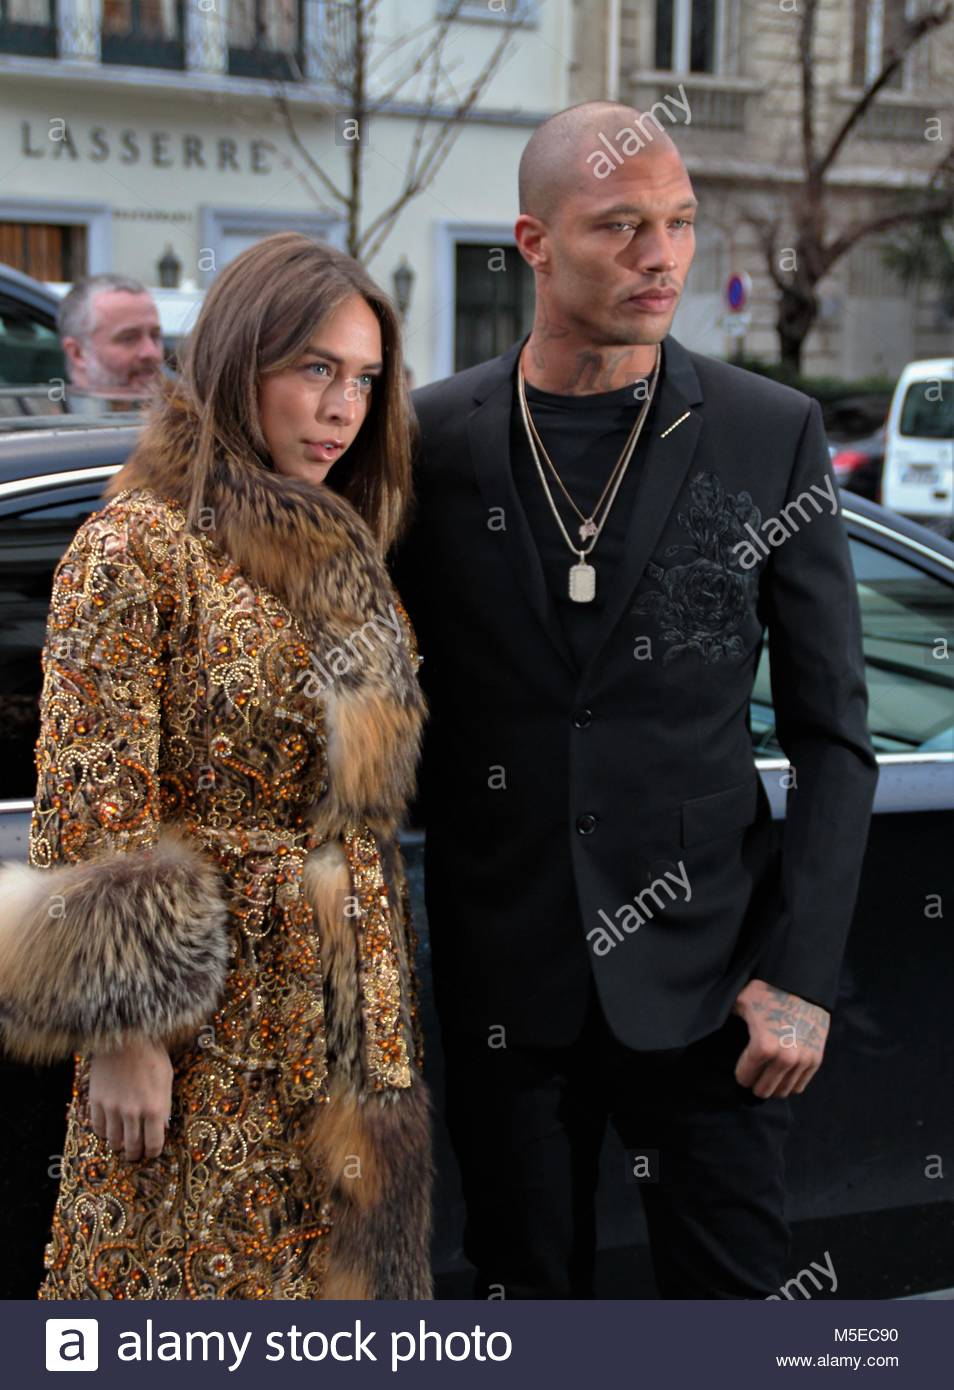 Paris Fashion Week Haute Couture - Ralph & Russo show - Arrivals  Featuring: Chloe Green, Jeremy Meeks Where: - Stock Image